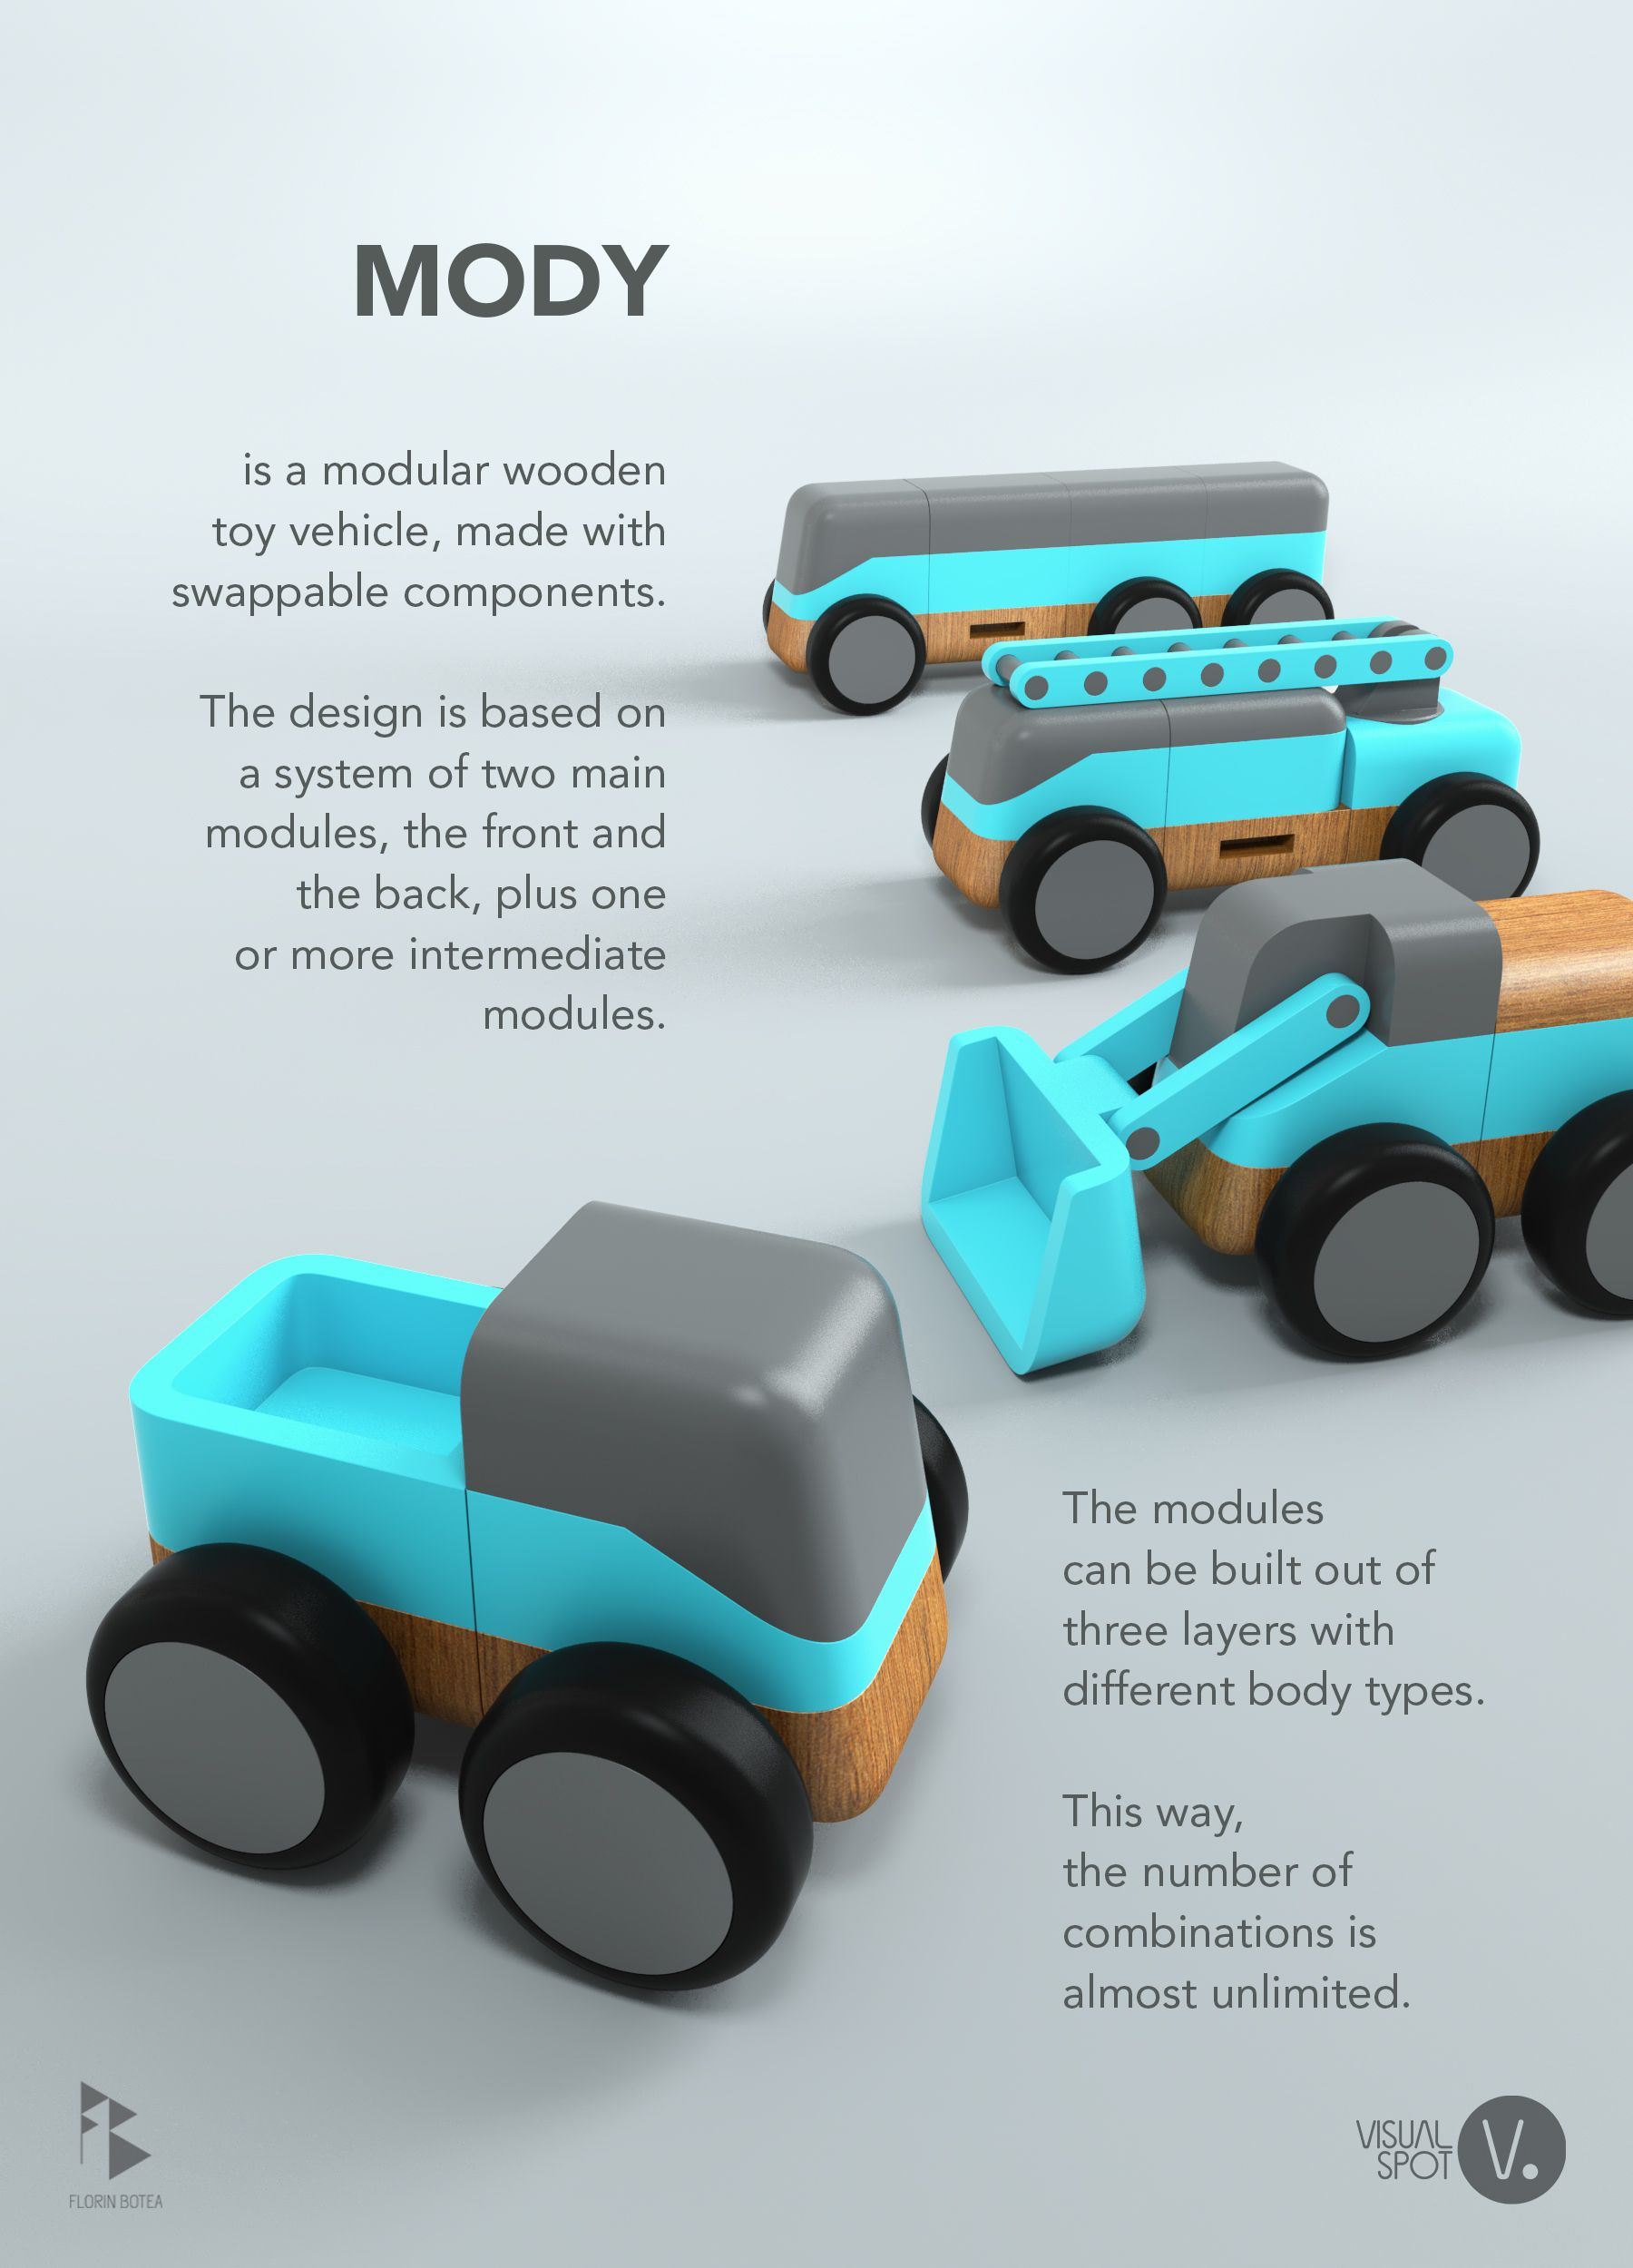 this is my design for a modular toy vehicle made entirely out of